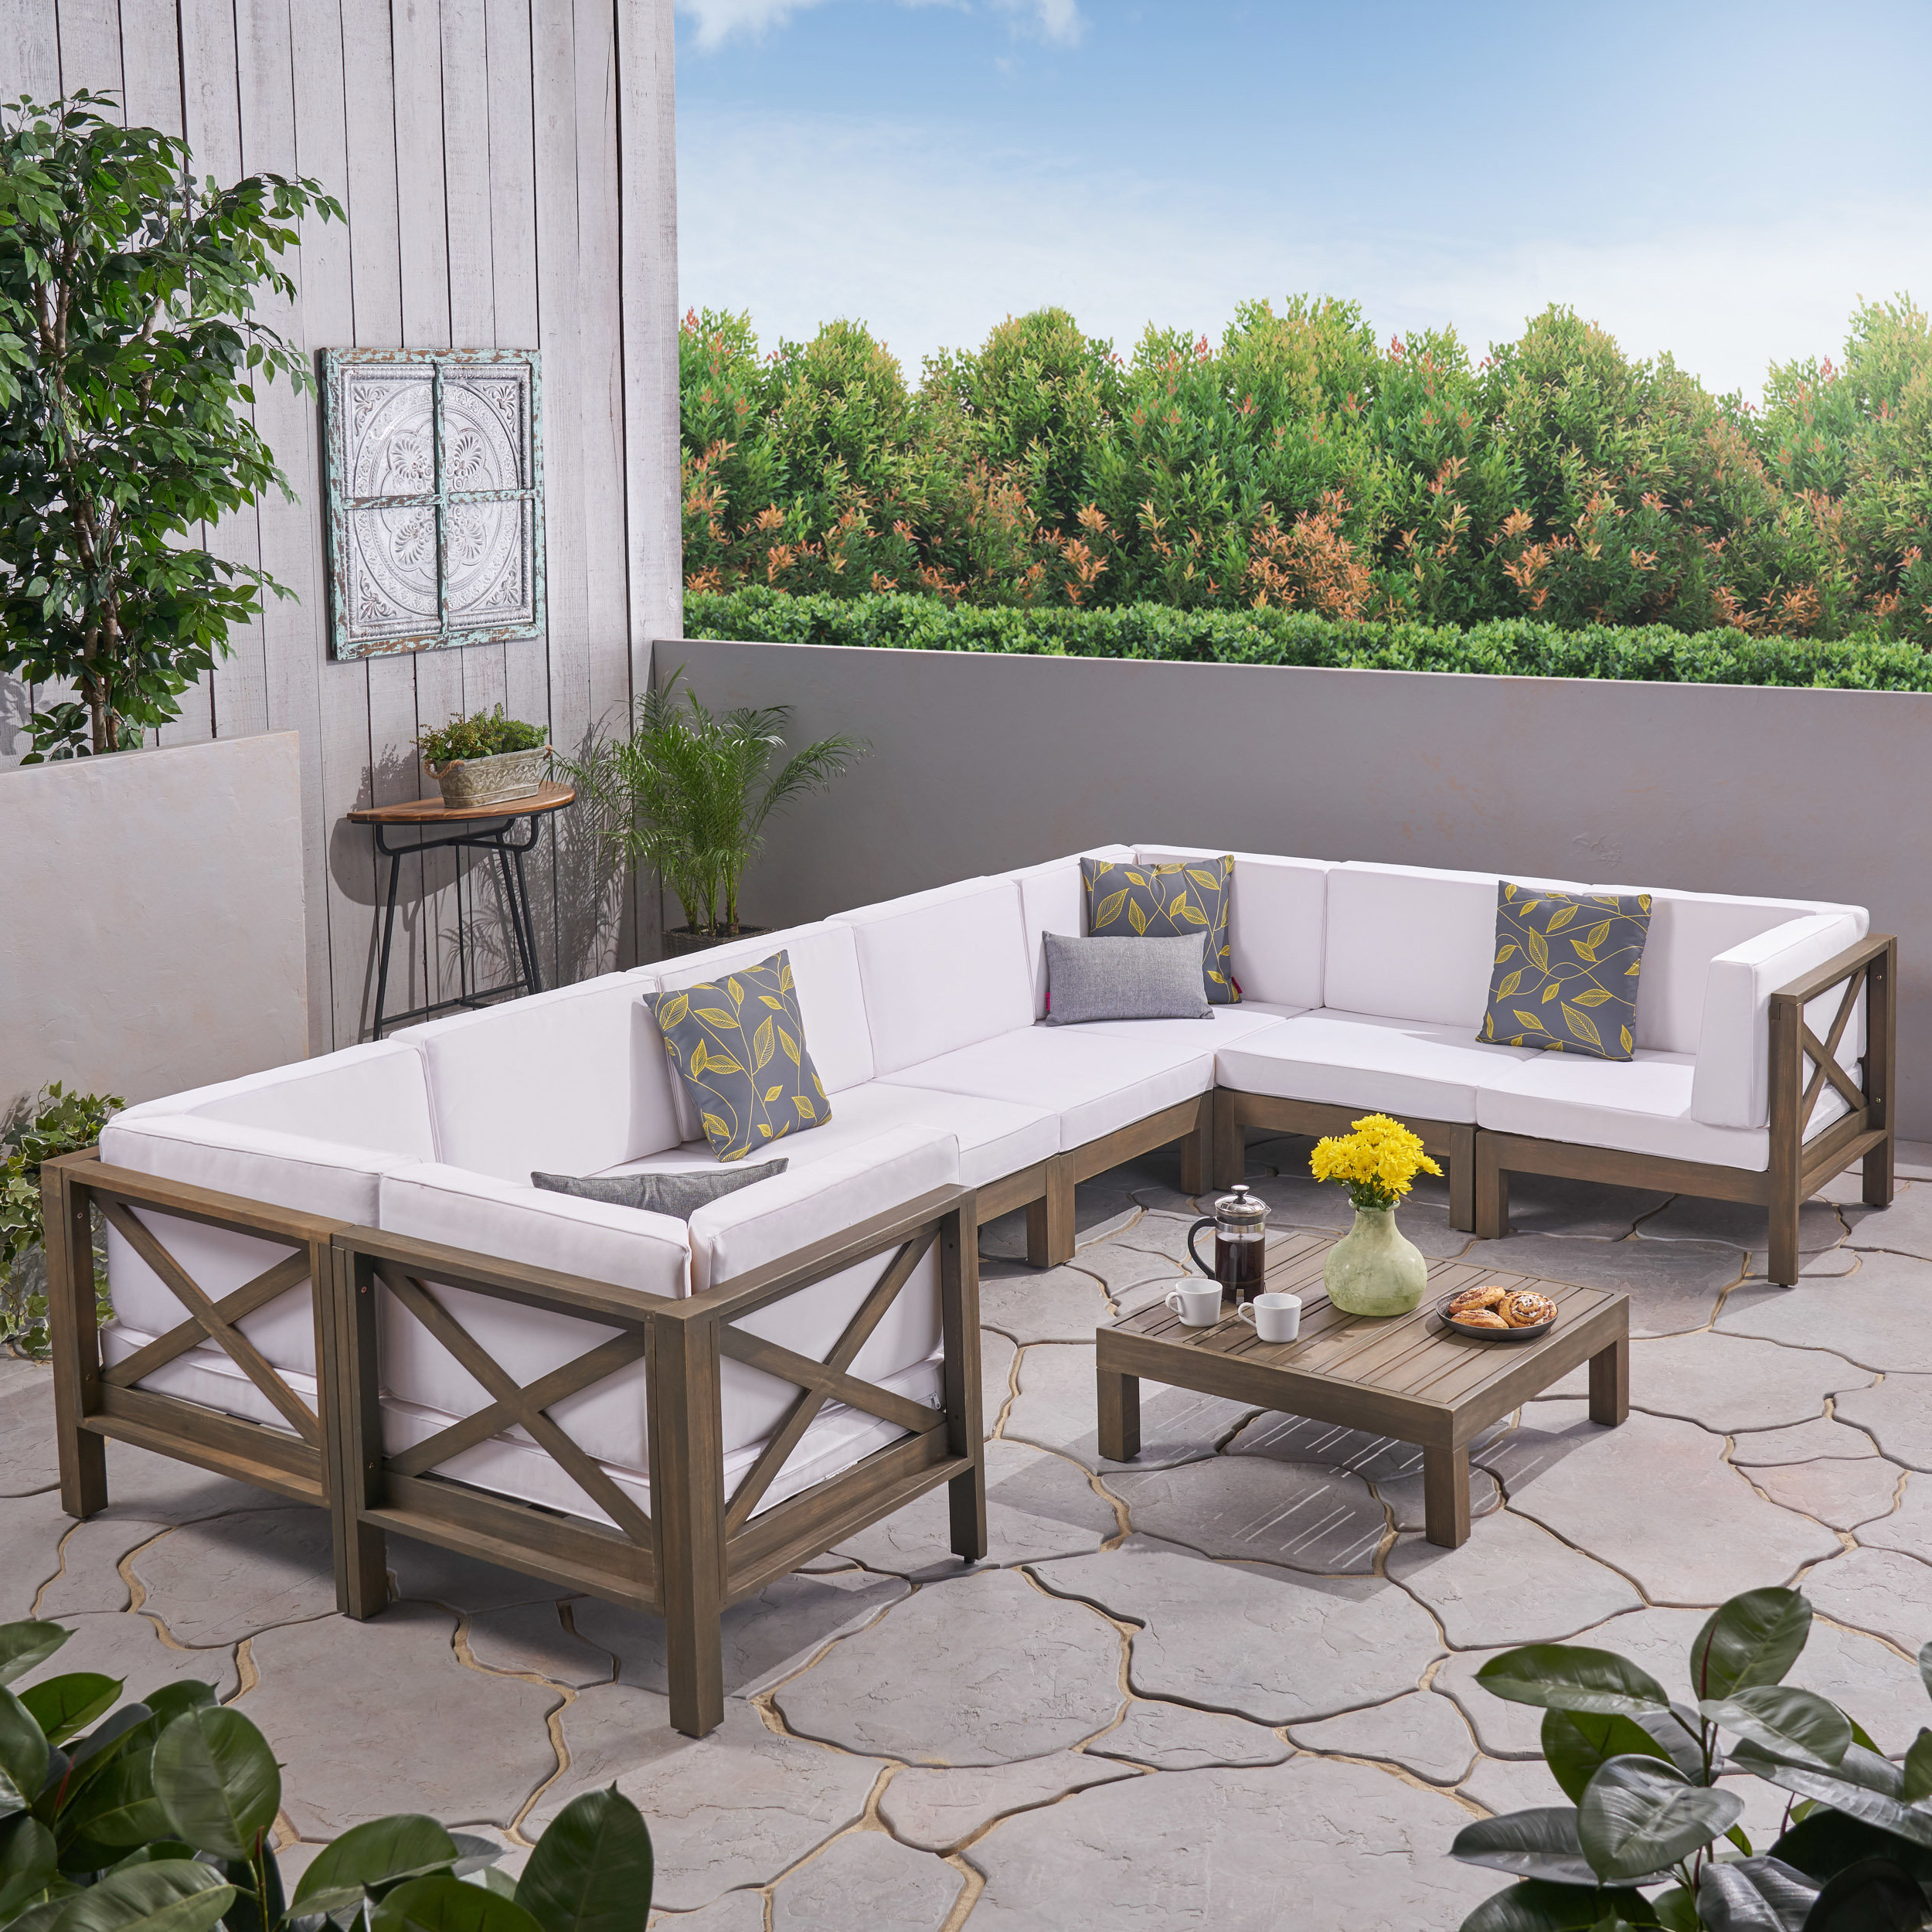 Latest Ellison 9 Piece Sectional Seating Group With Cushions For Ellison Patio Sectionals With Cushions (View 13 of 20)